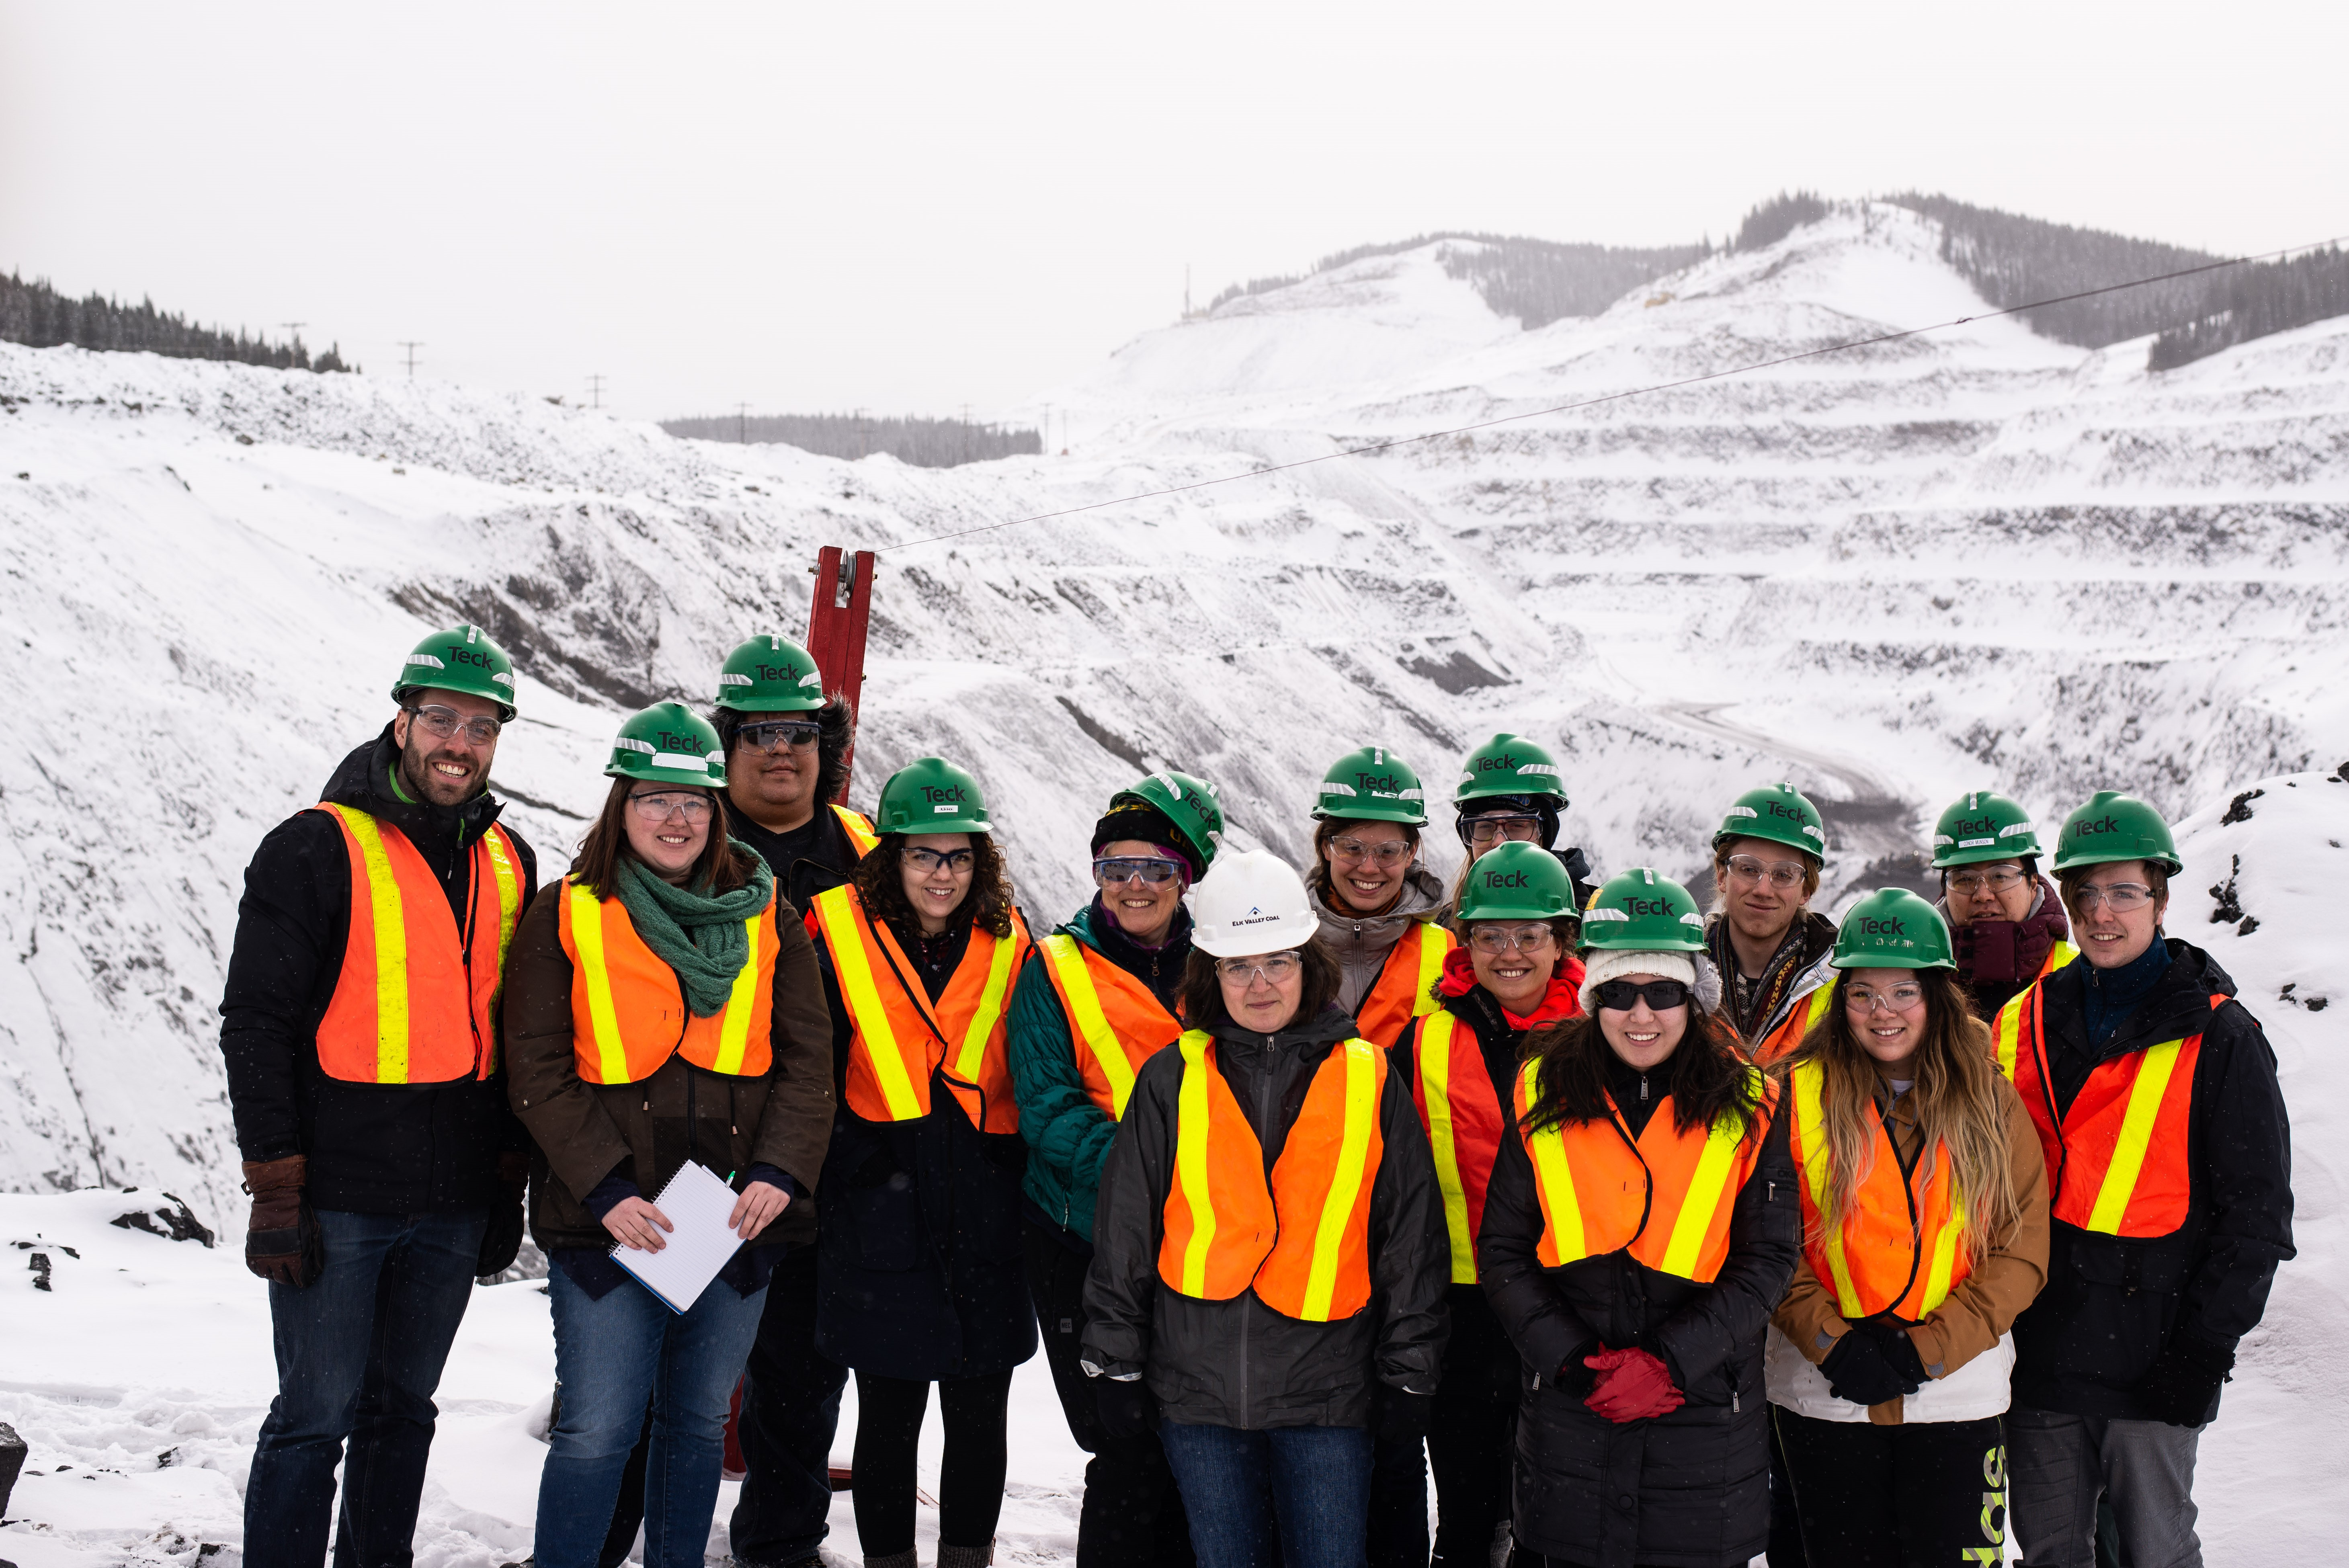 Some of our group all geared up and ready tour some mines. Photo by H. Longley.